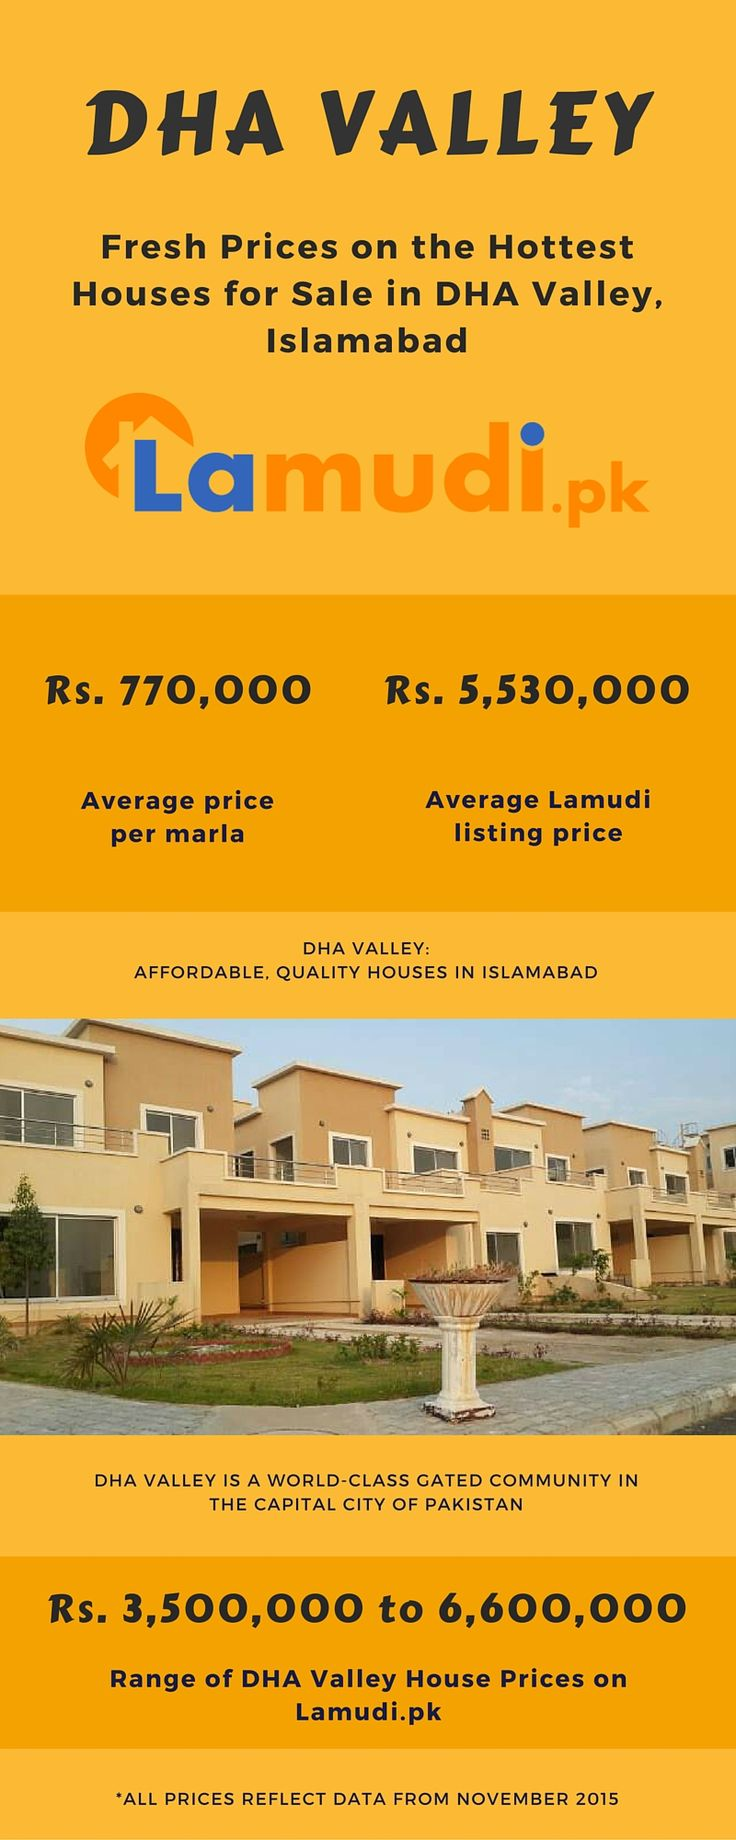 House for sale real estate flyer amp ad template word amp publisher - Dha Valley Jpg 800 2000